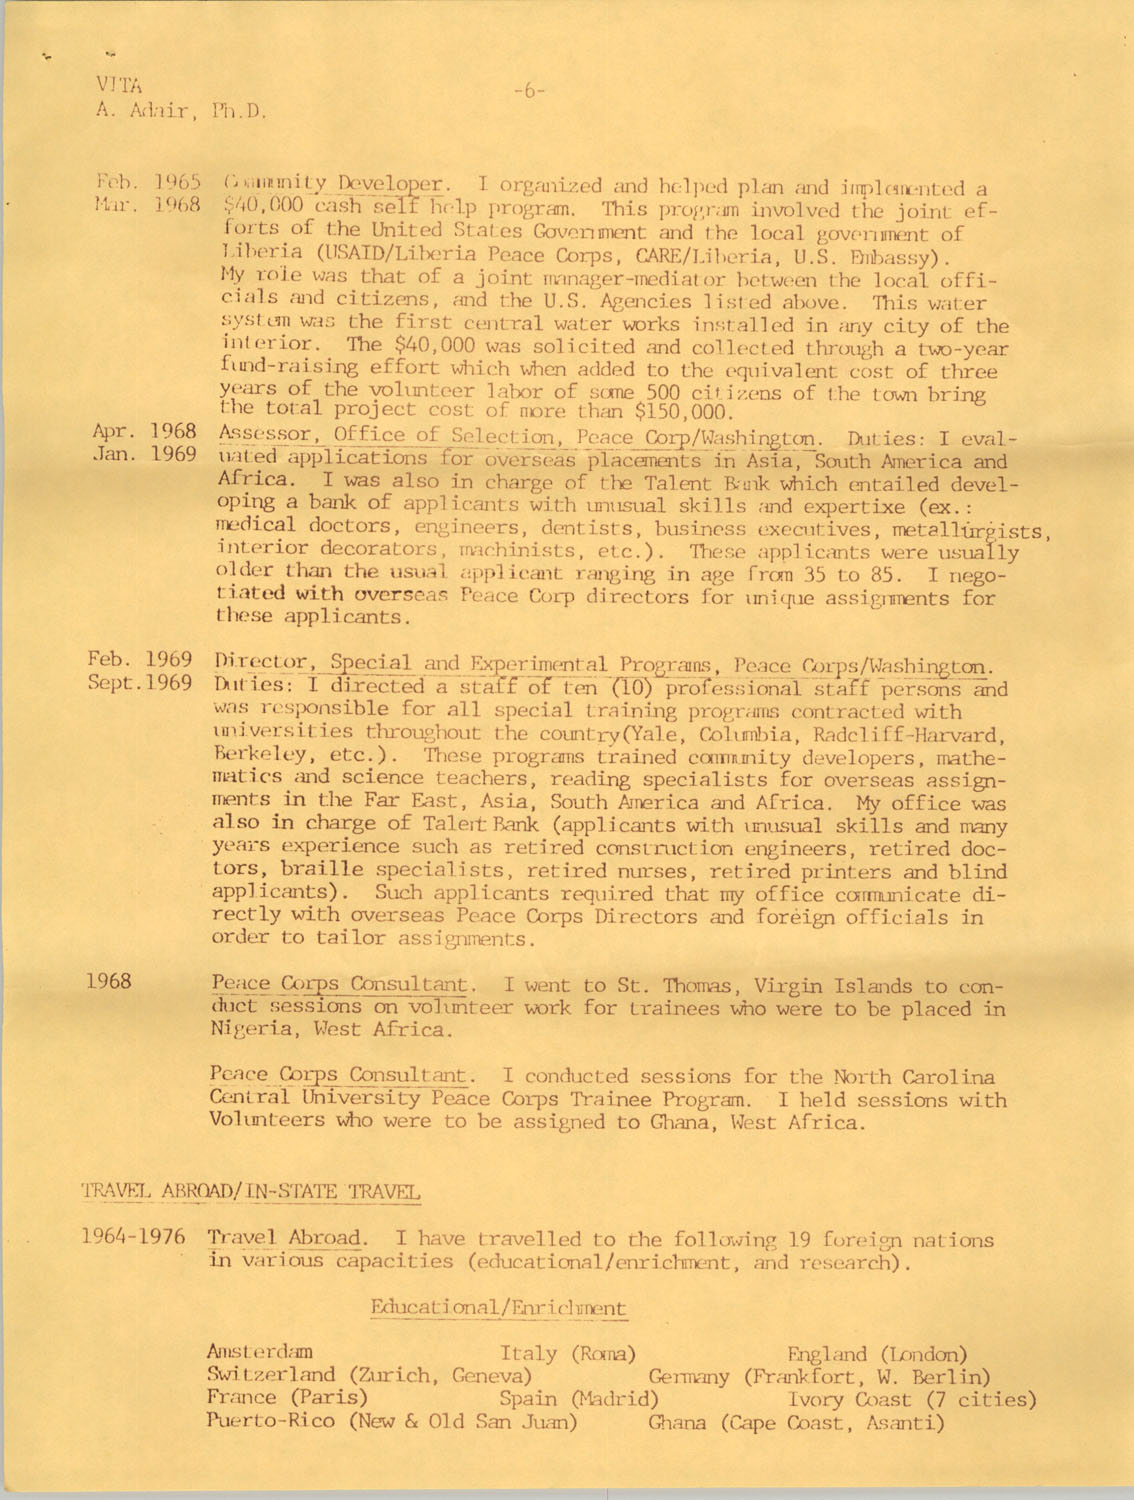 Alvis V. Adair Resume, Page 6